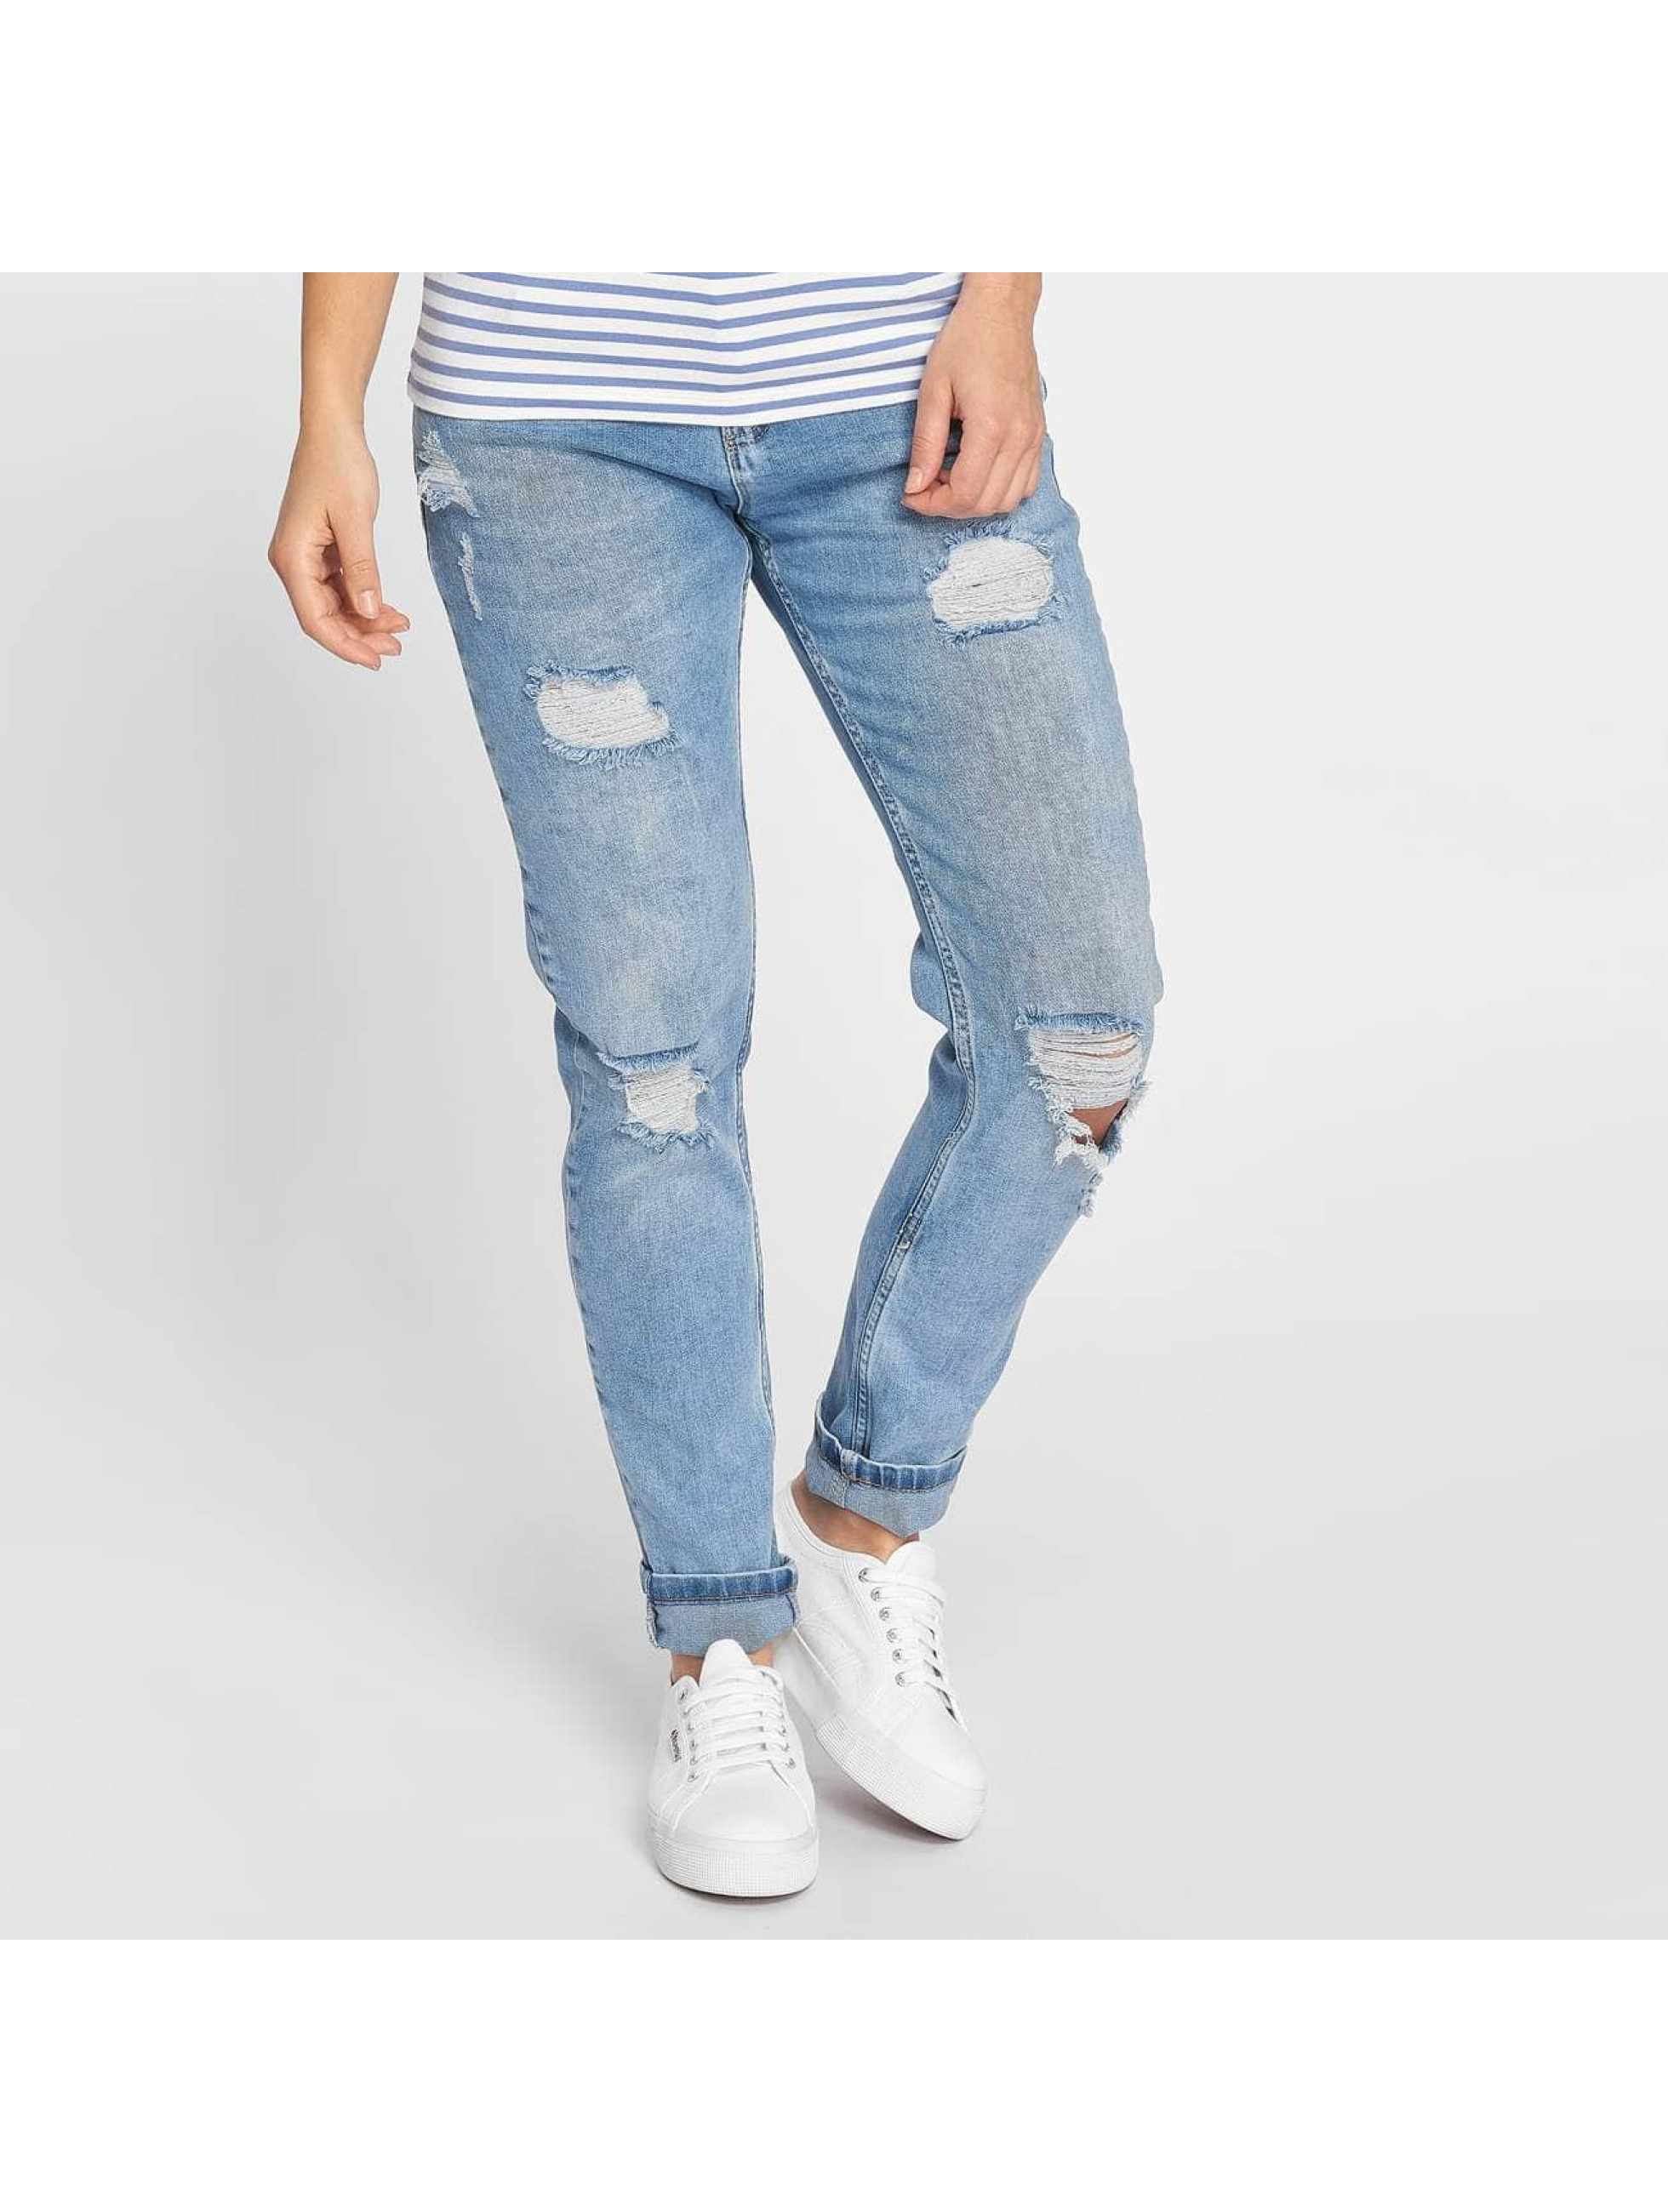 Just Rhyse / Boyfriend Jeans Bubbles in blue S